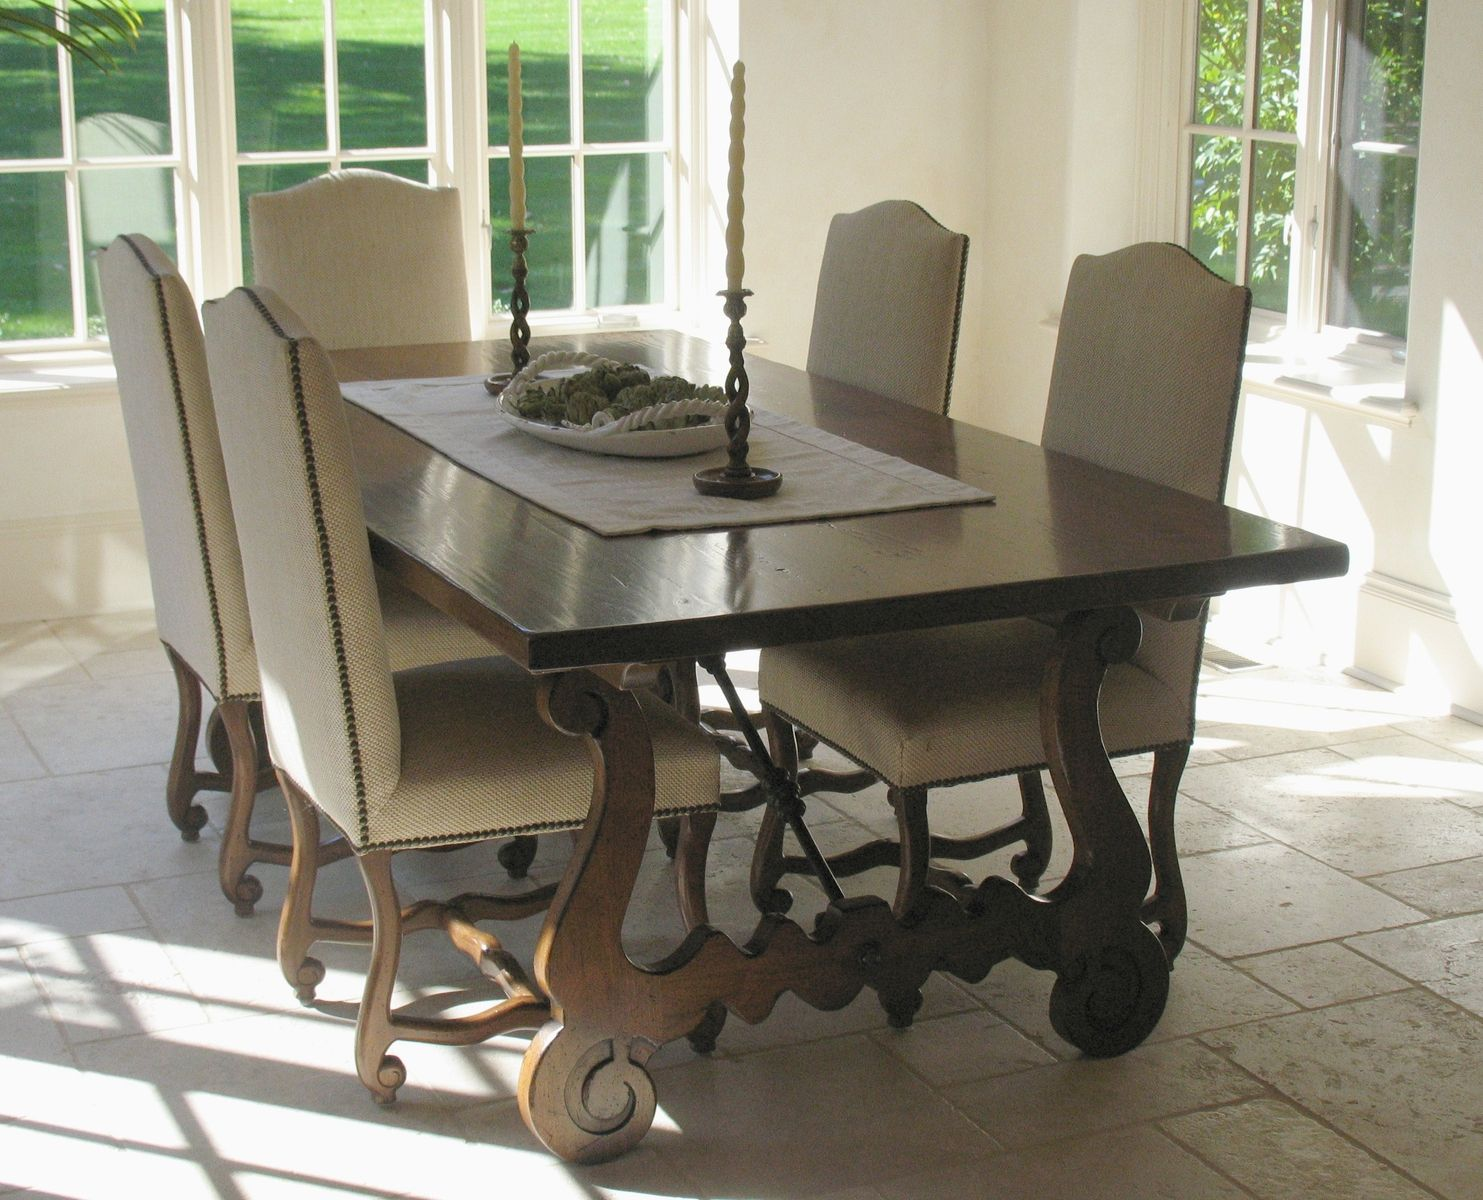 Modern rustic dining room table  Spanish Refectory Dining Table  Dining Rooms  Pinterest  Spanish